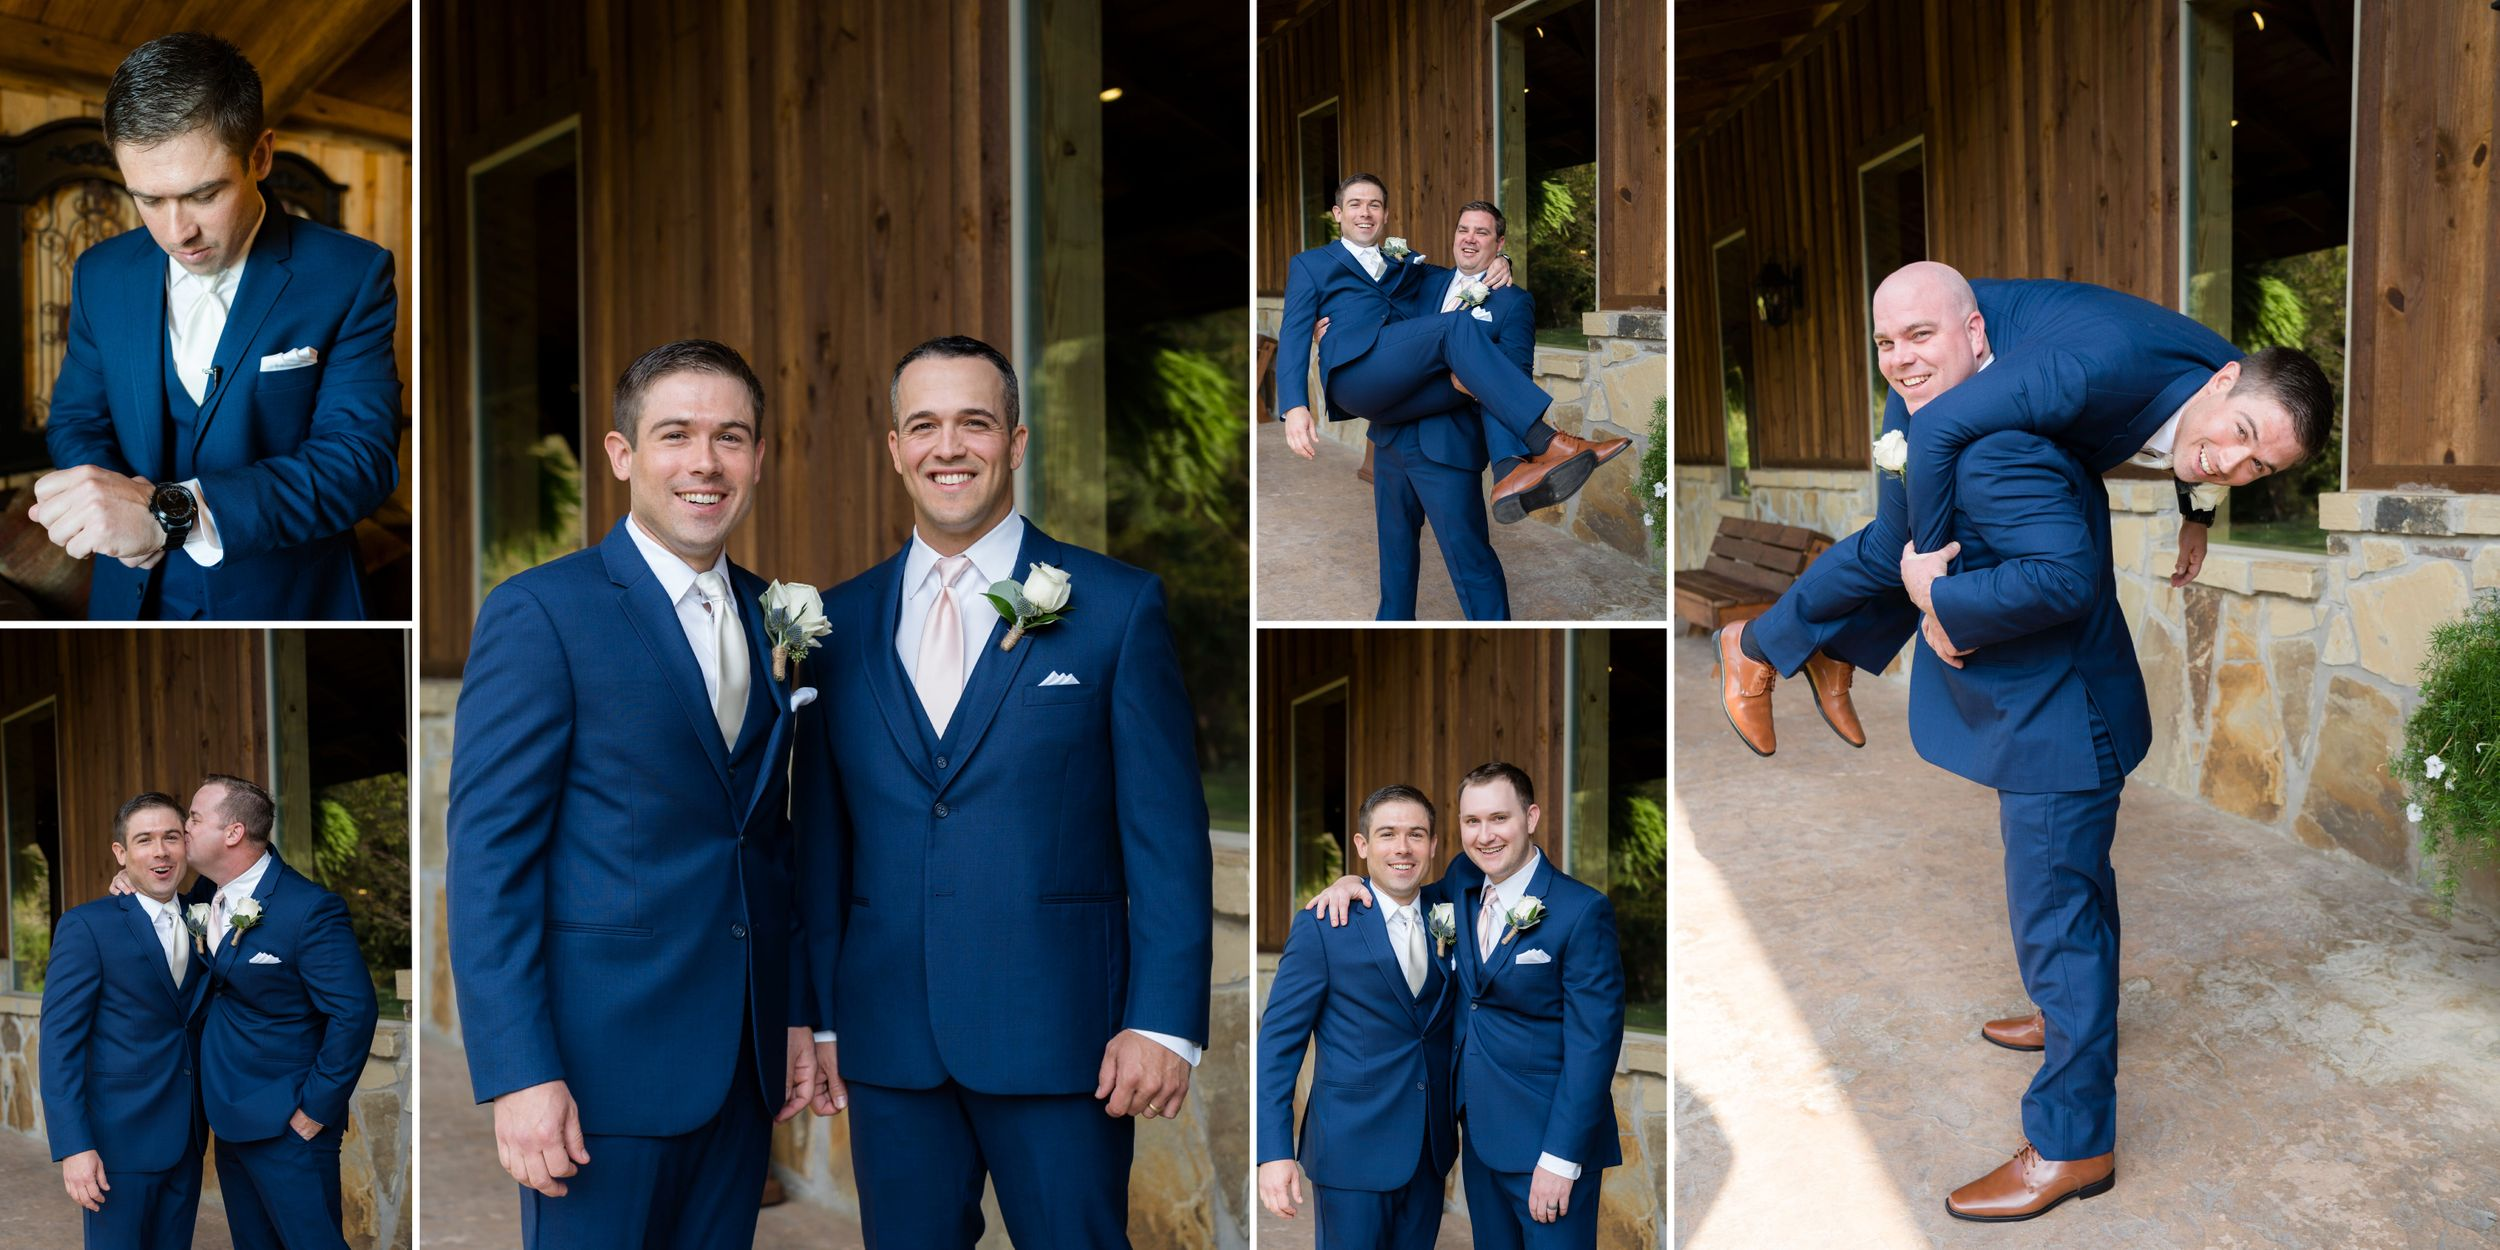 groom and groomsmen photos and wearing navy suits texas wedding